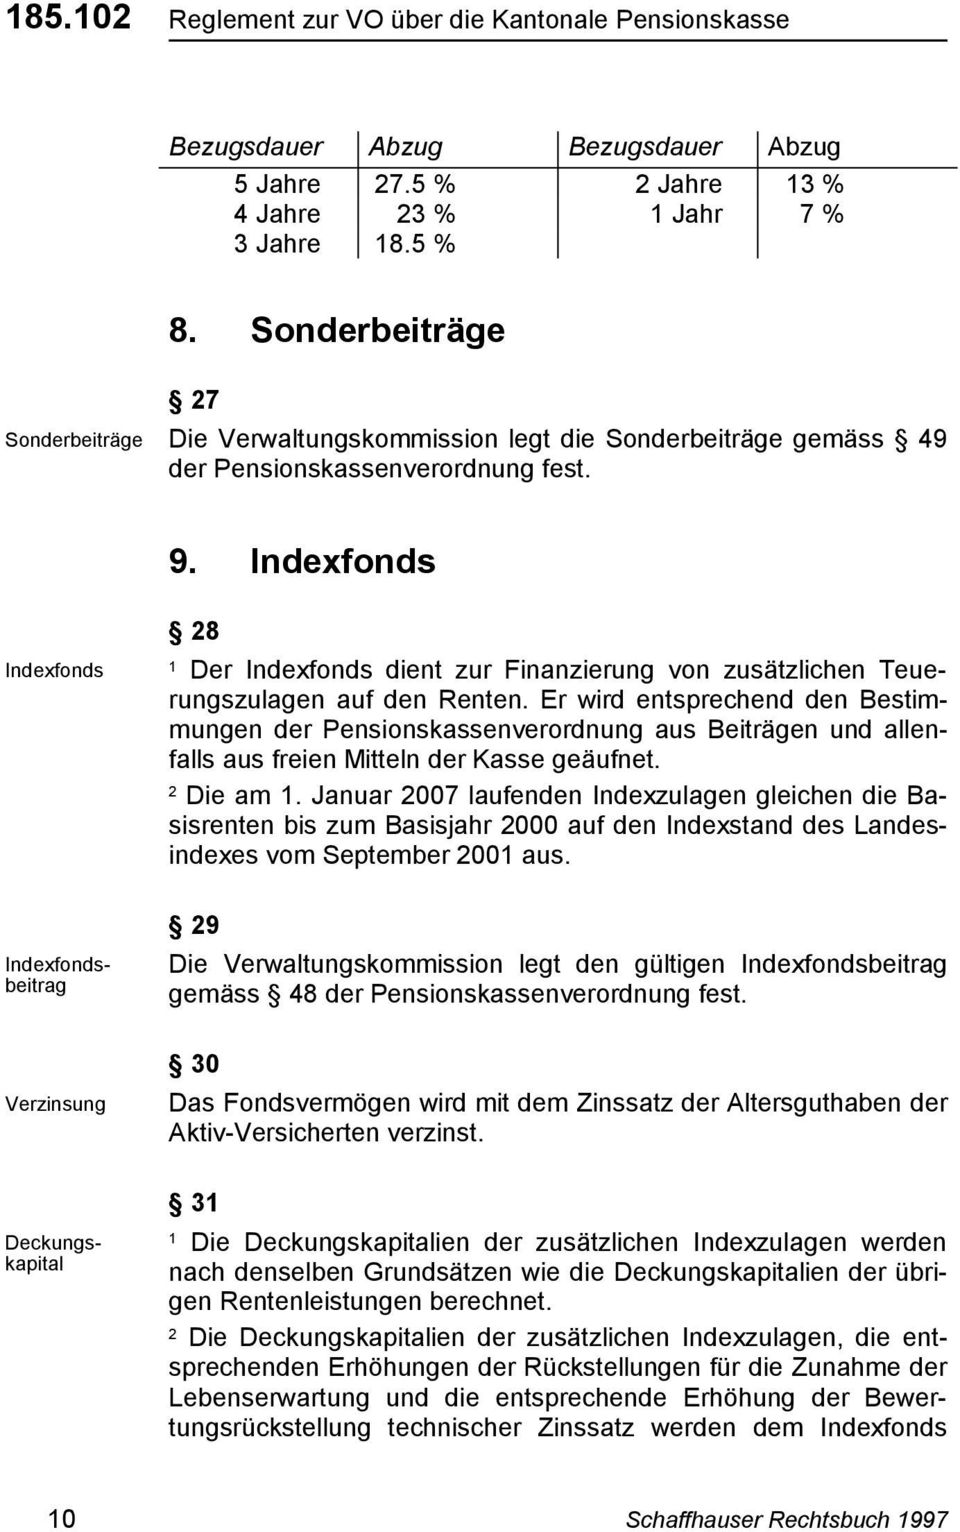 Indexfonds Indexfonds Verzinsung Indexfondsbeitrag Deckungskapital 8 Der Indexfonds dient zur Finanzierung von zusätzlichen Teuerungszulagen auf den Renten.